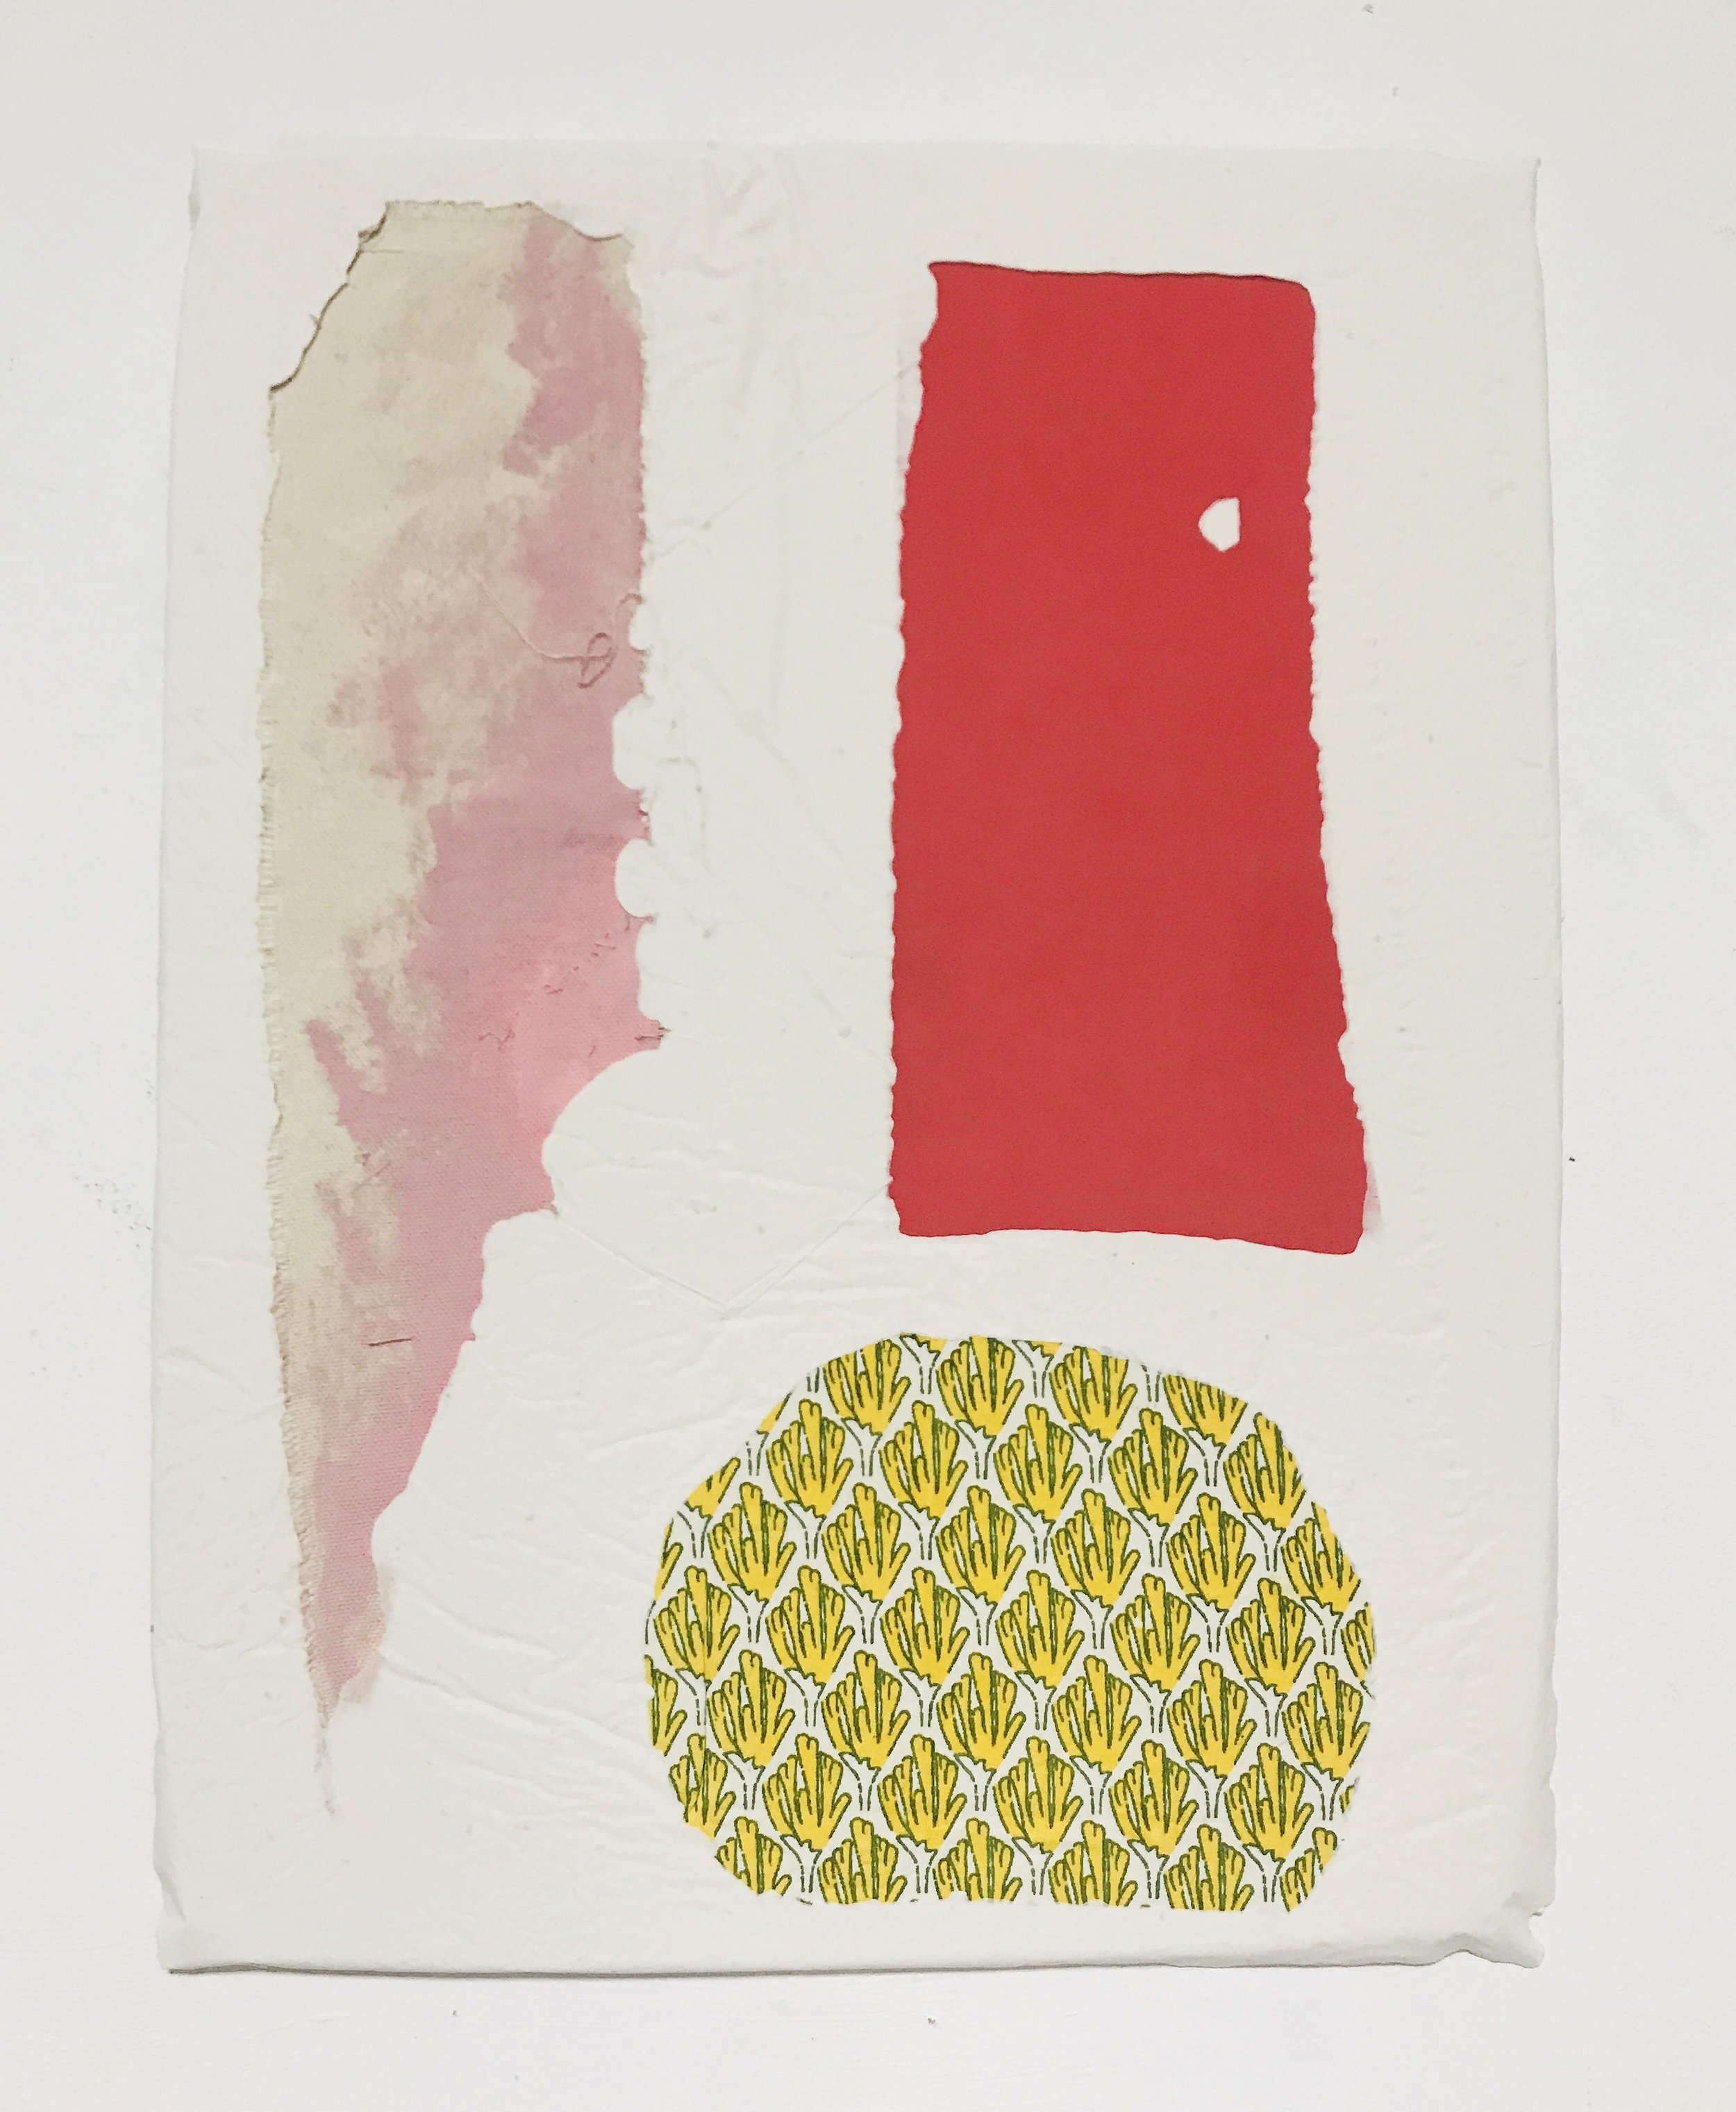 Untitled Fragment (pink canvas, red foam, yellow cotton) | Composite and Mixed Media | 42 x 32cm